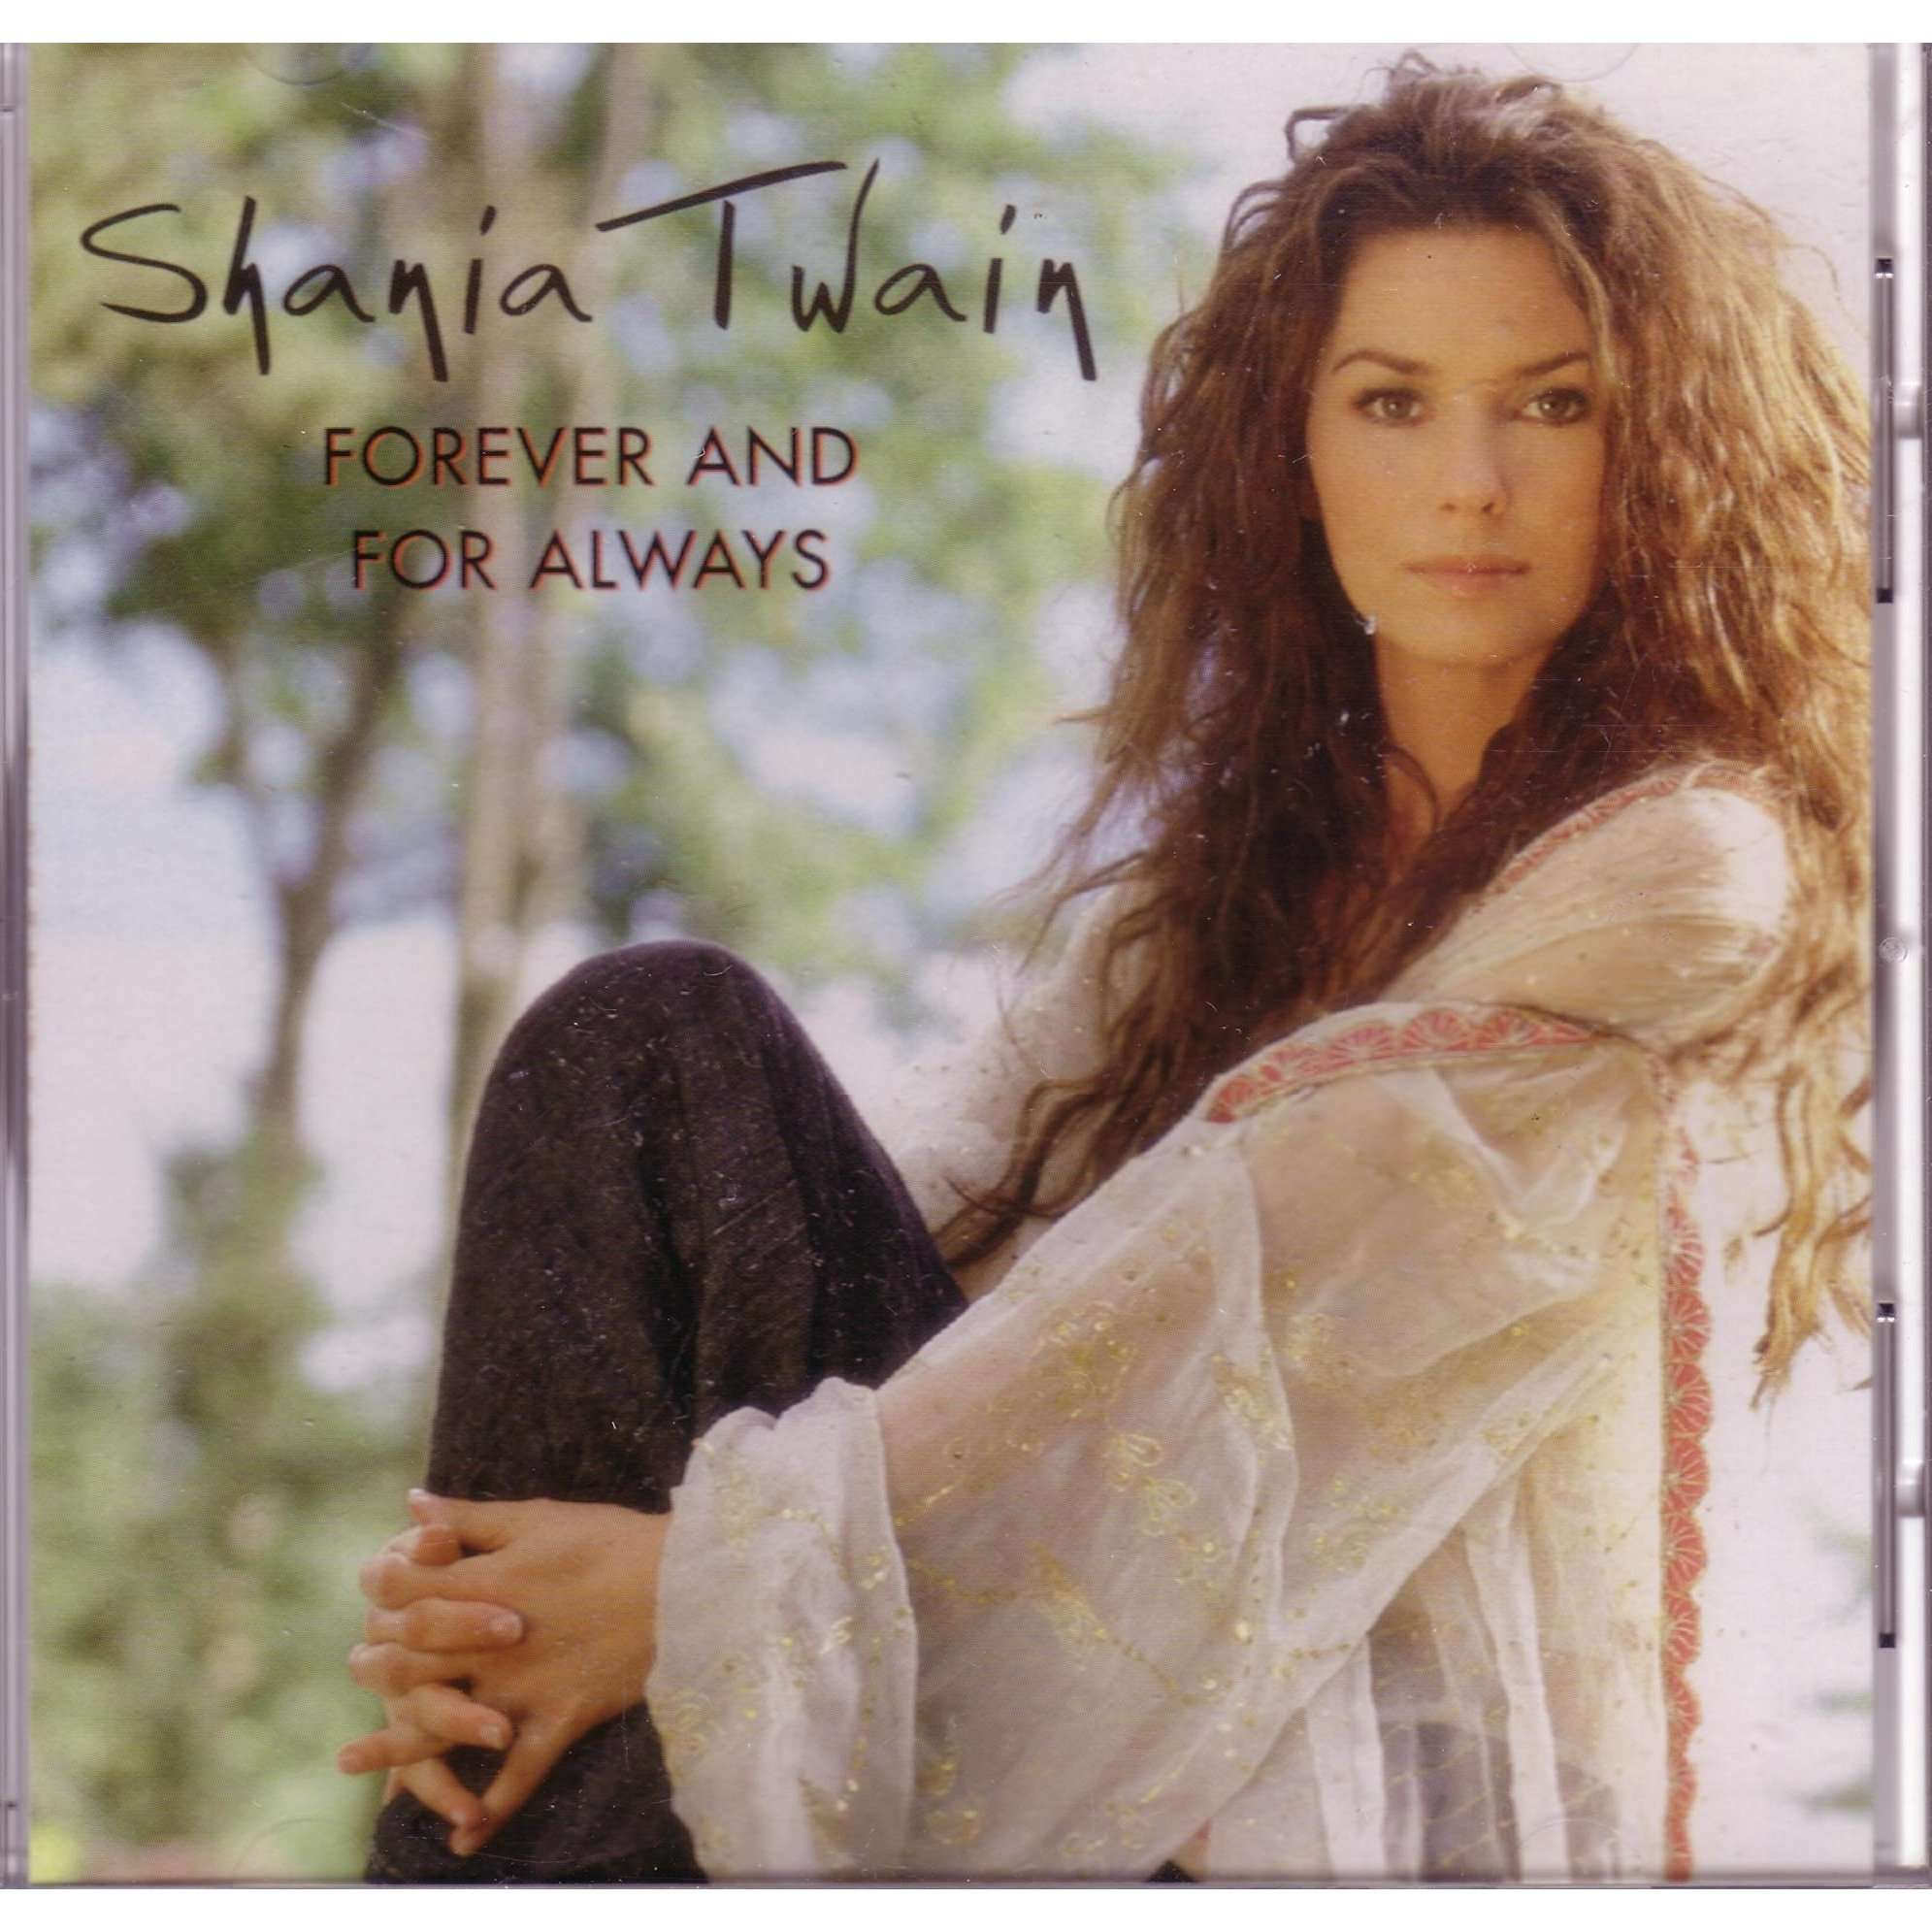 shania twain forever and for always video download